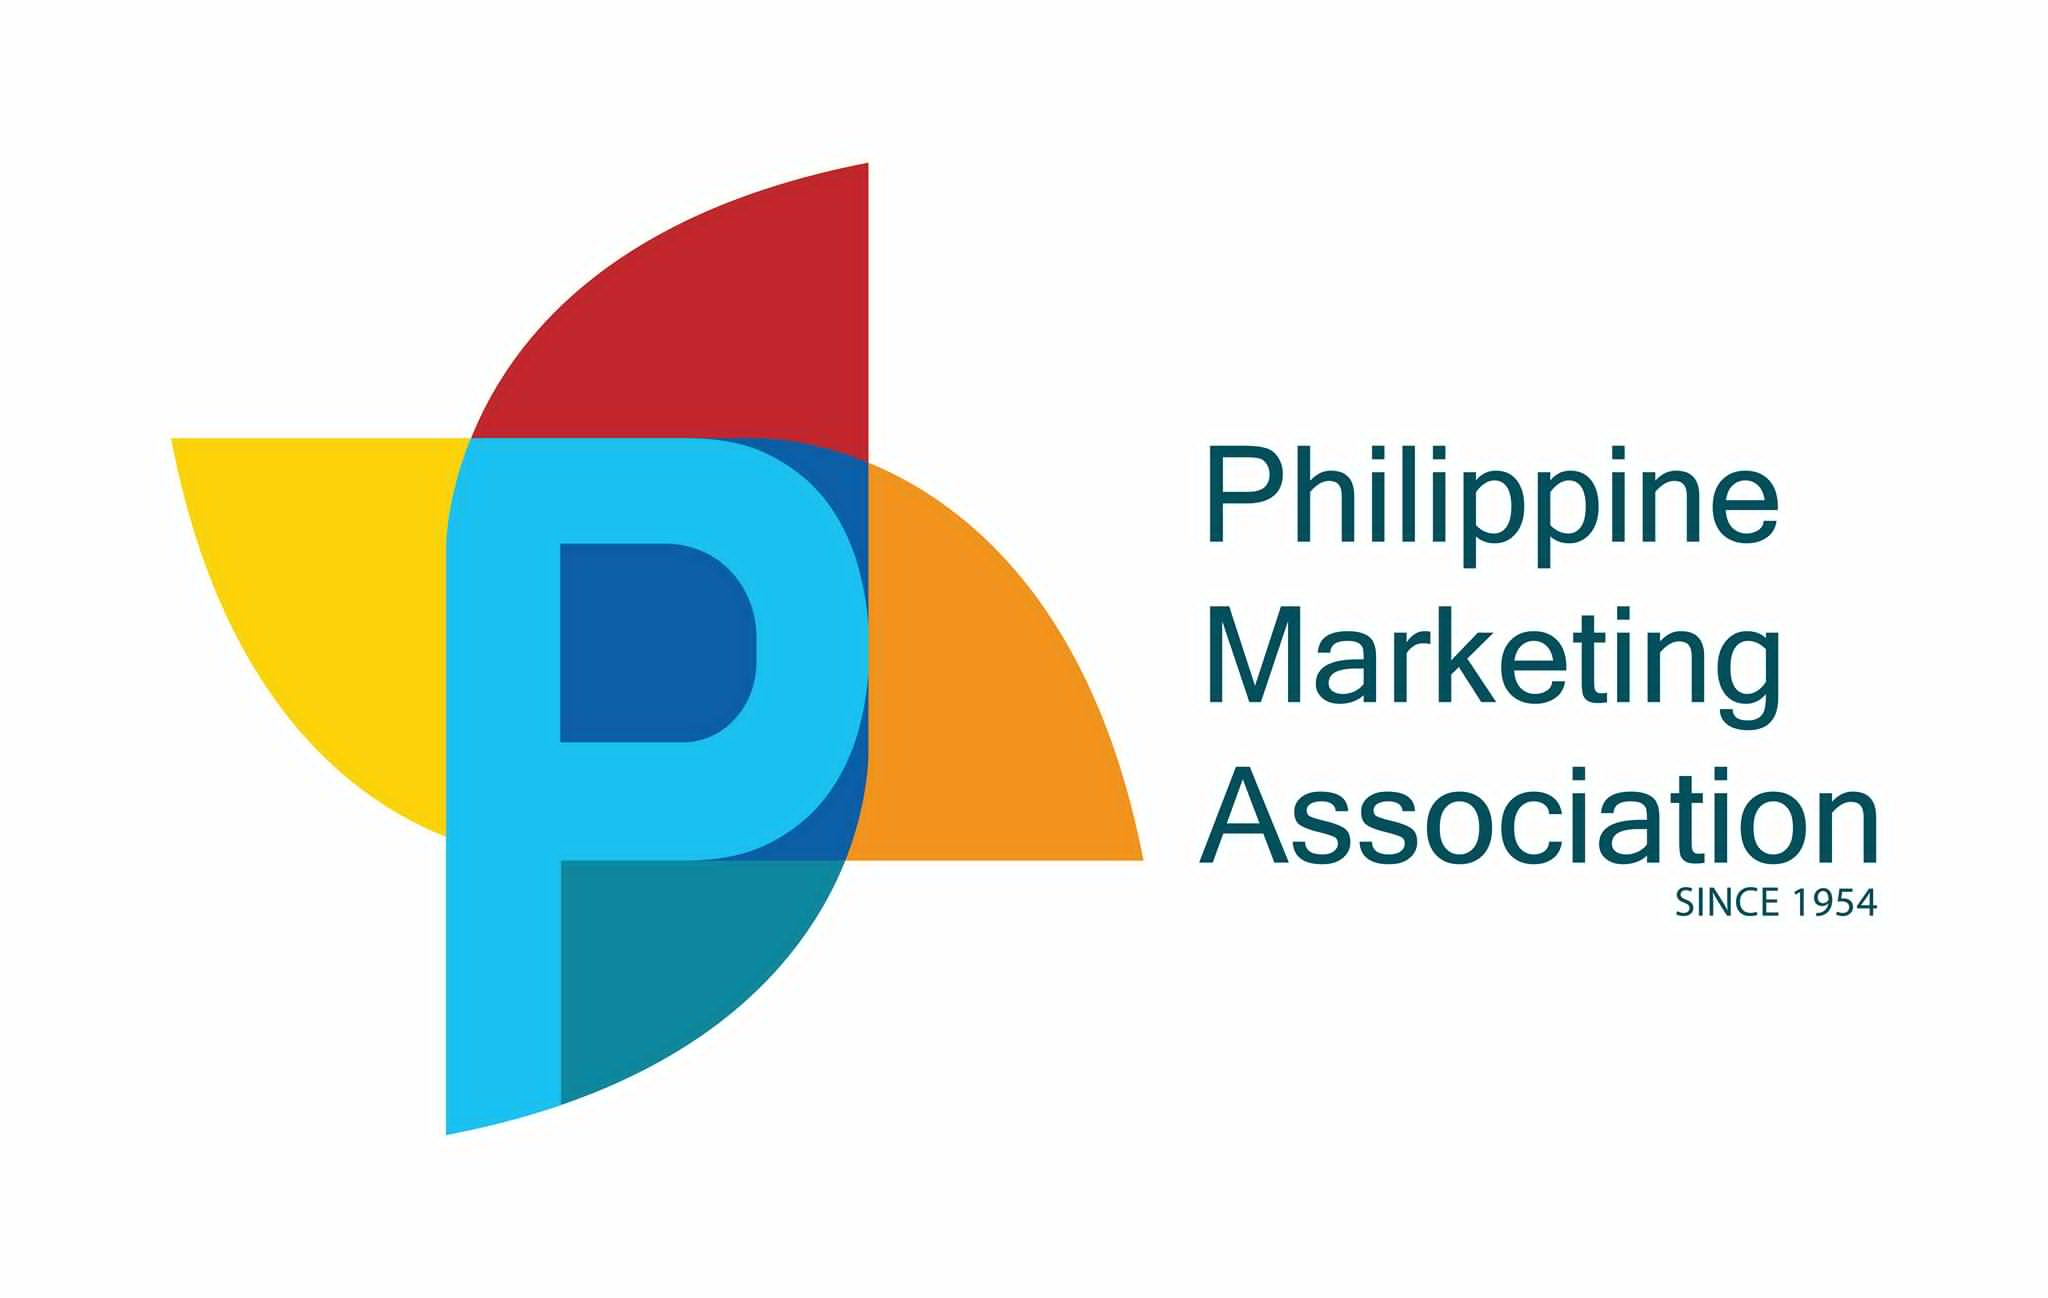 Philippine Marketing Association